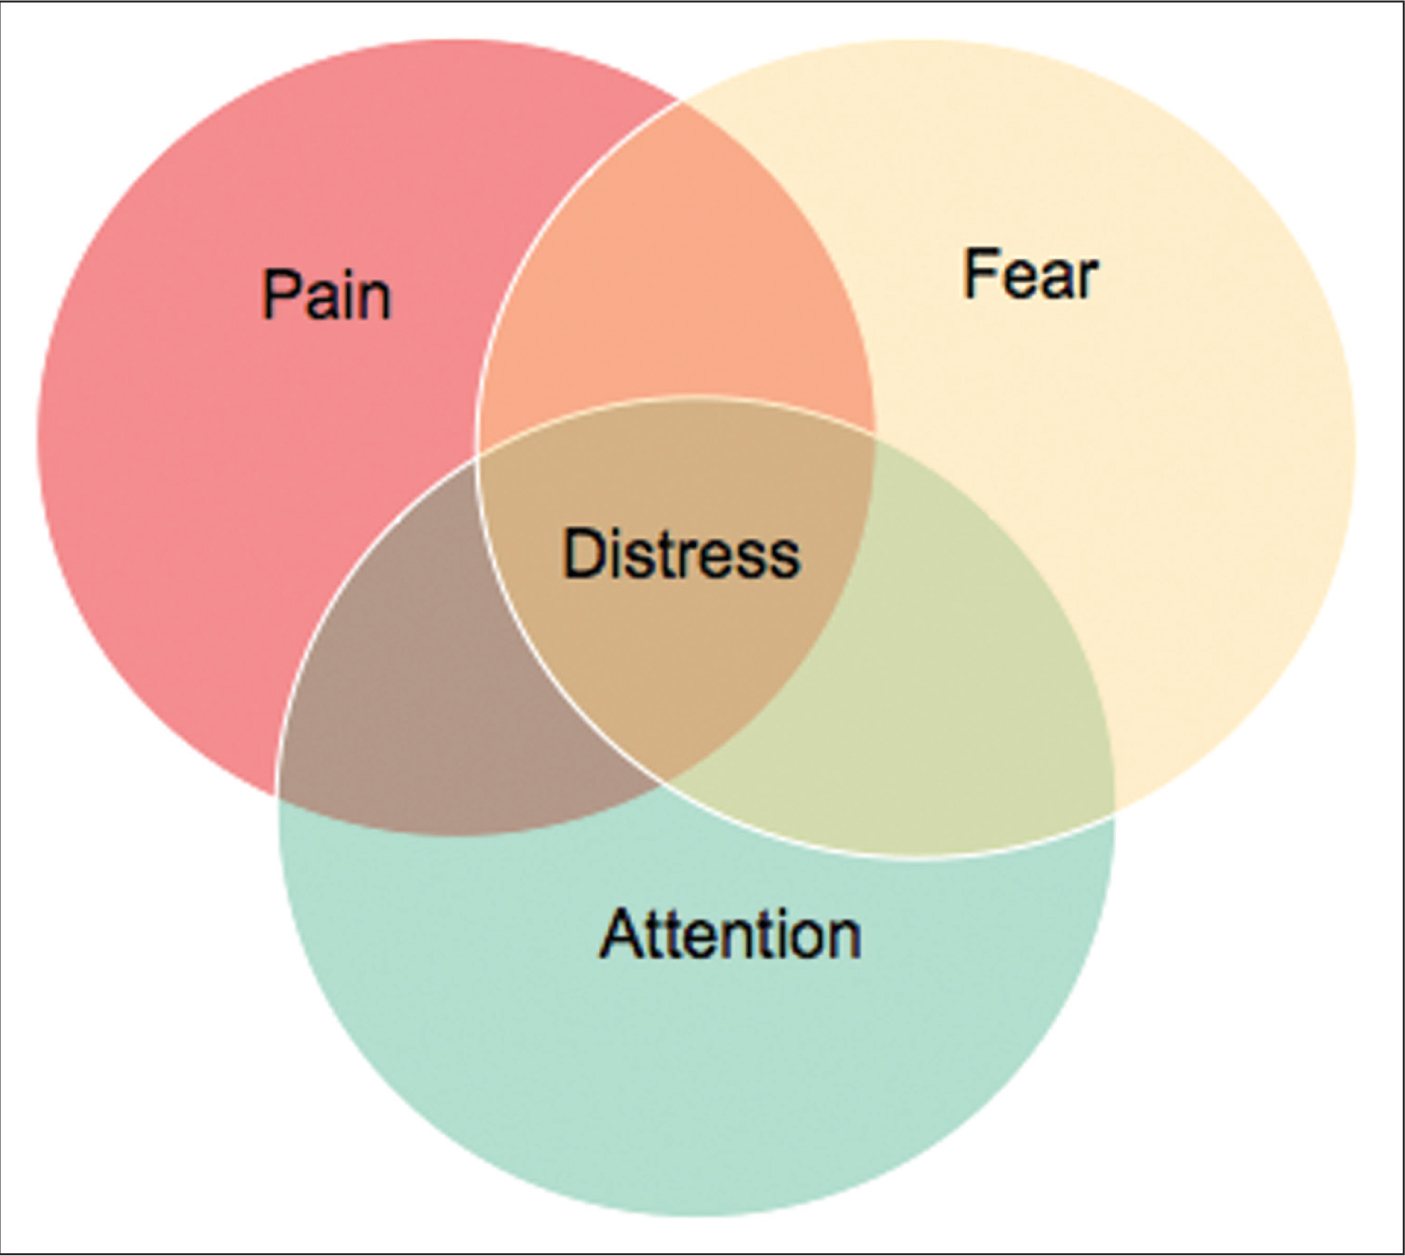 Venn diagram showing the overlapping major components of distress.Image courtesy of Amy L. Baxter, MD, FAAP, FACEP. Reprinted with permission.